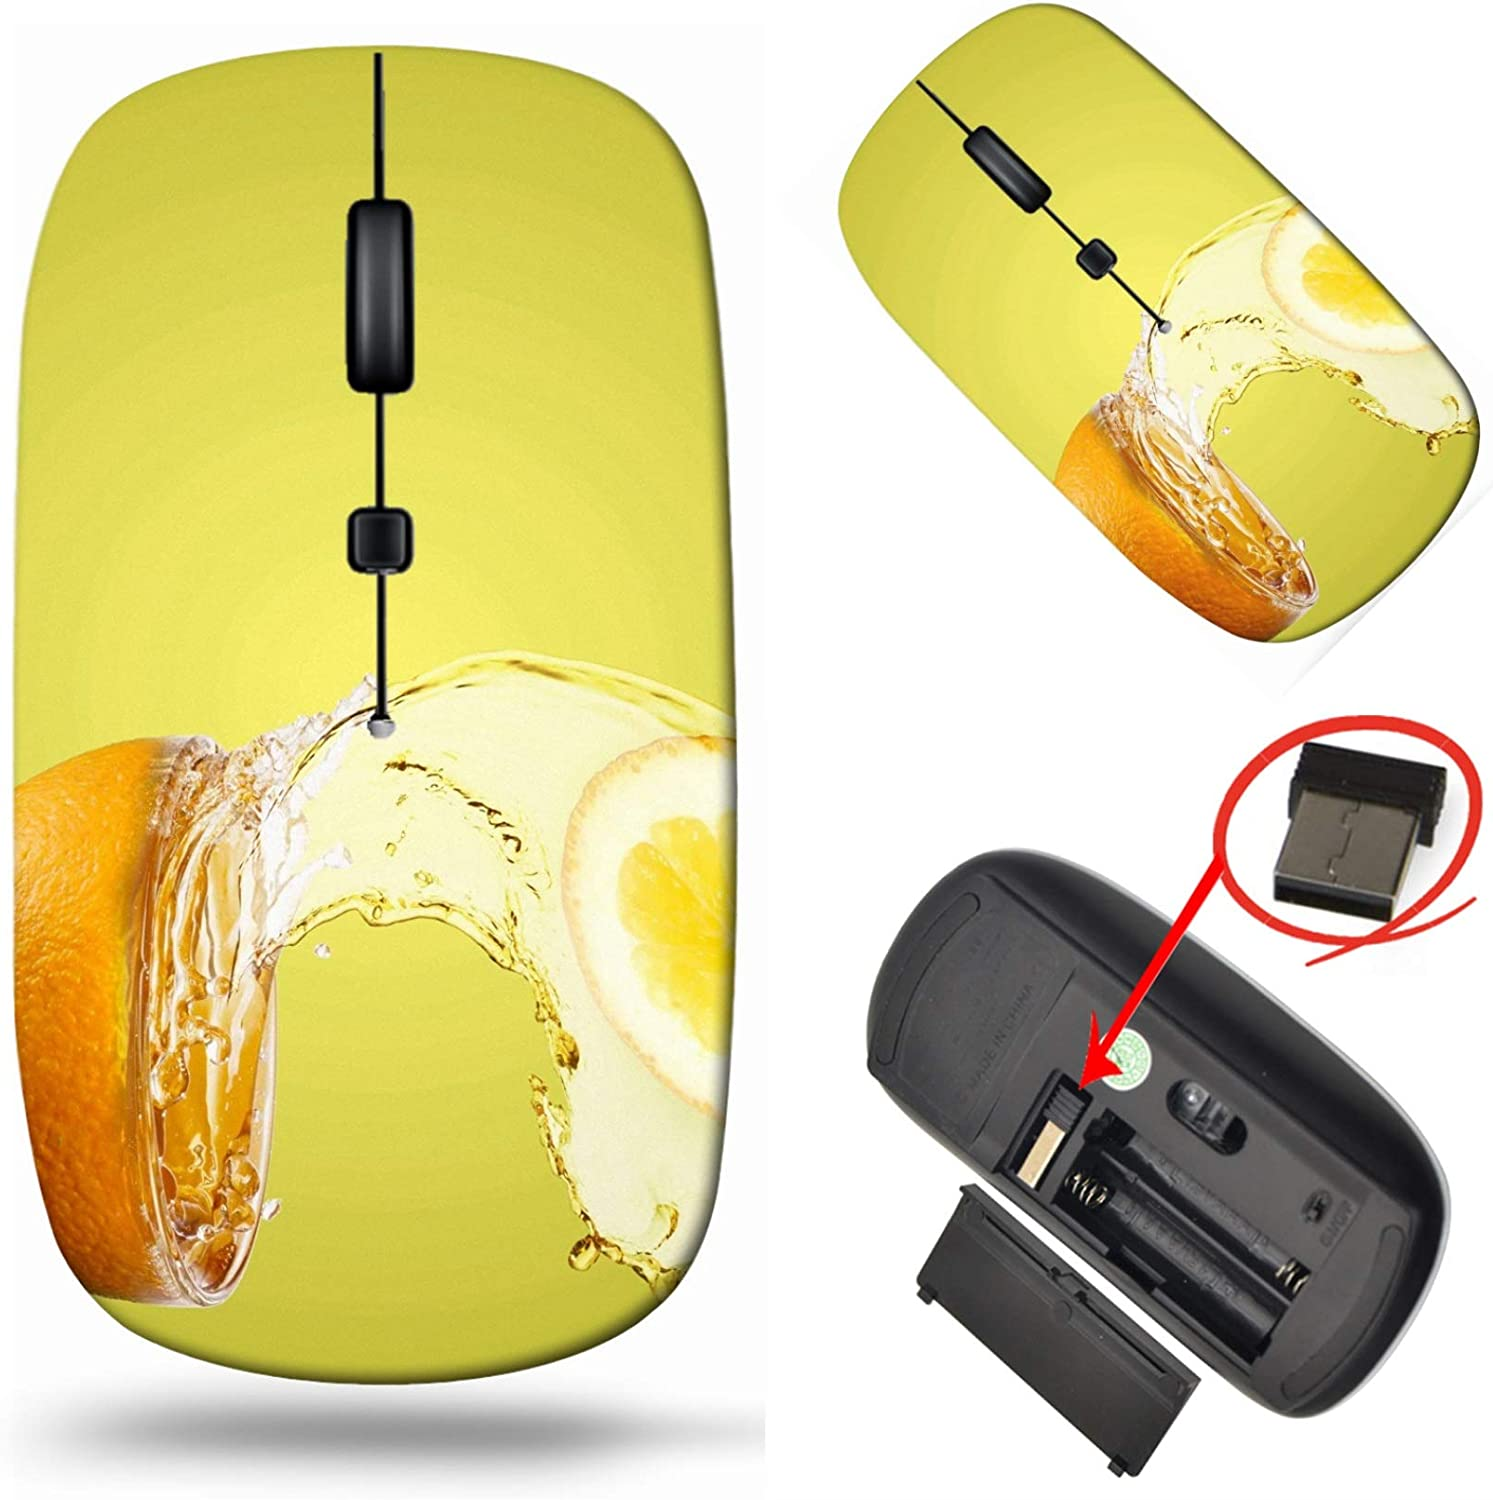 Wireless Mouse Computer Laptop USB New mail order Travel 2.4G